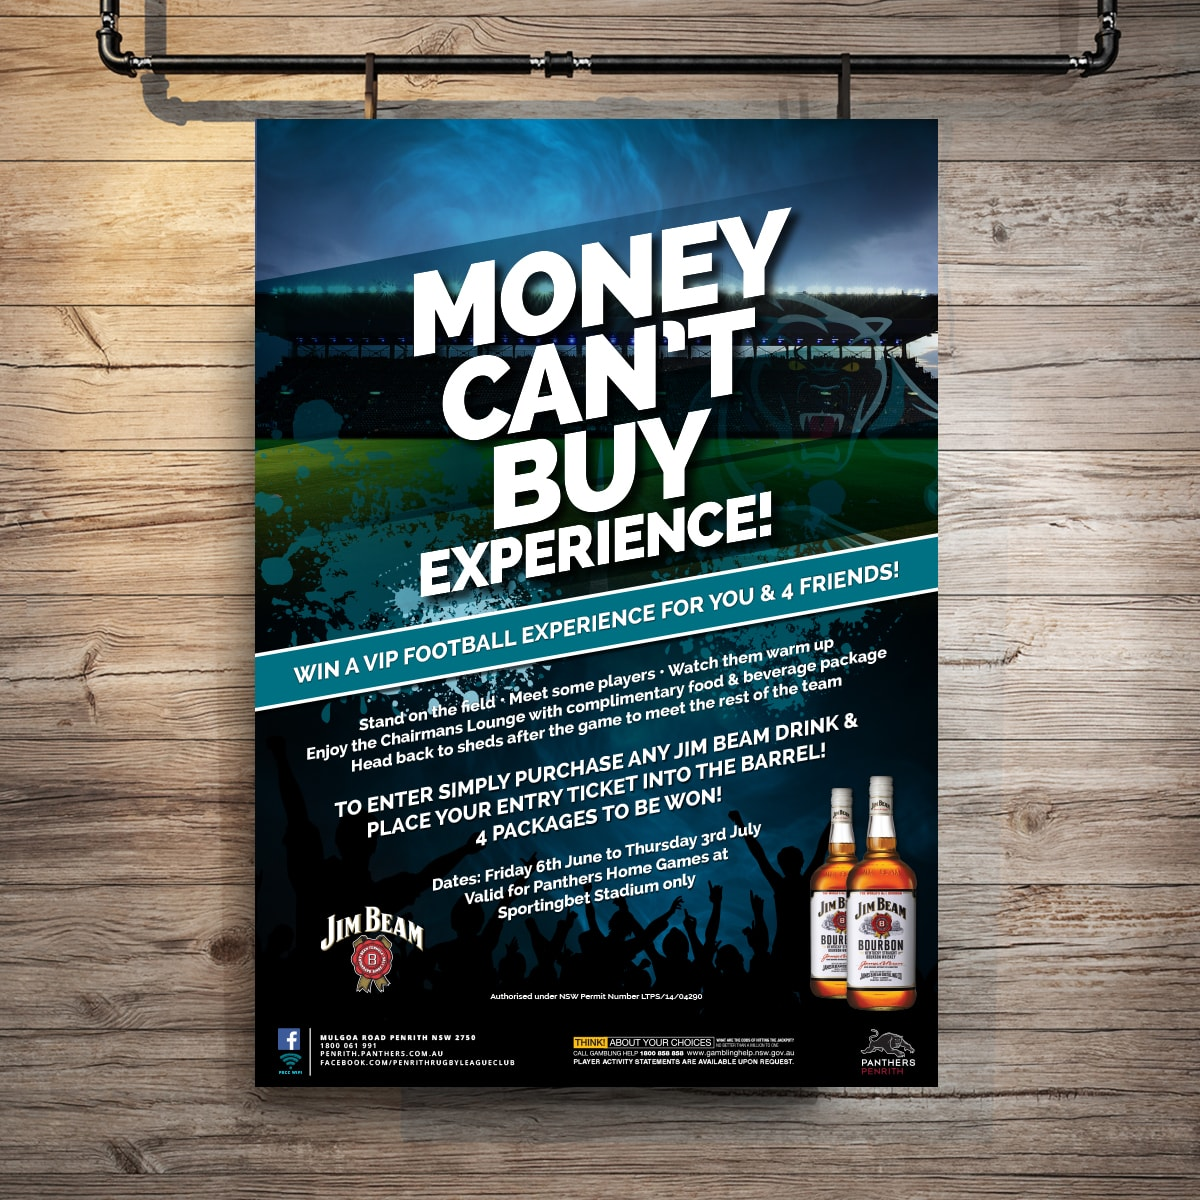 Money Can't Buy promtional point of sale POS Kit artwork graphic design for Penrith Panthers.